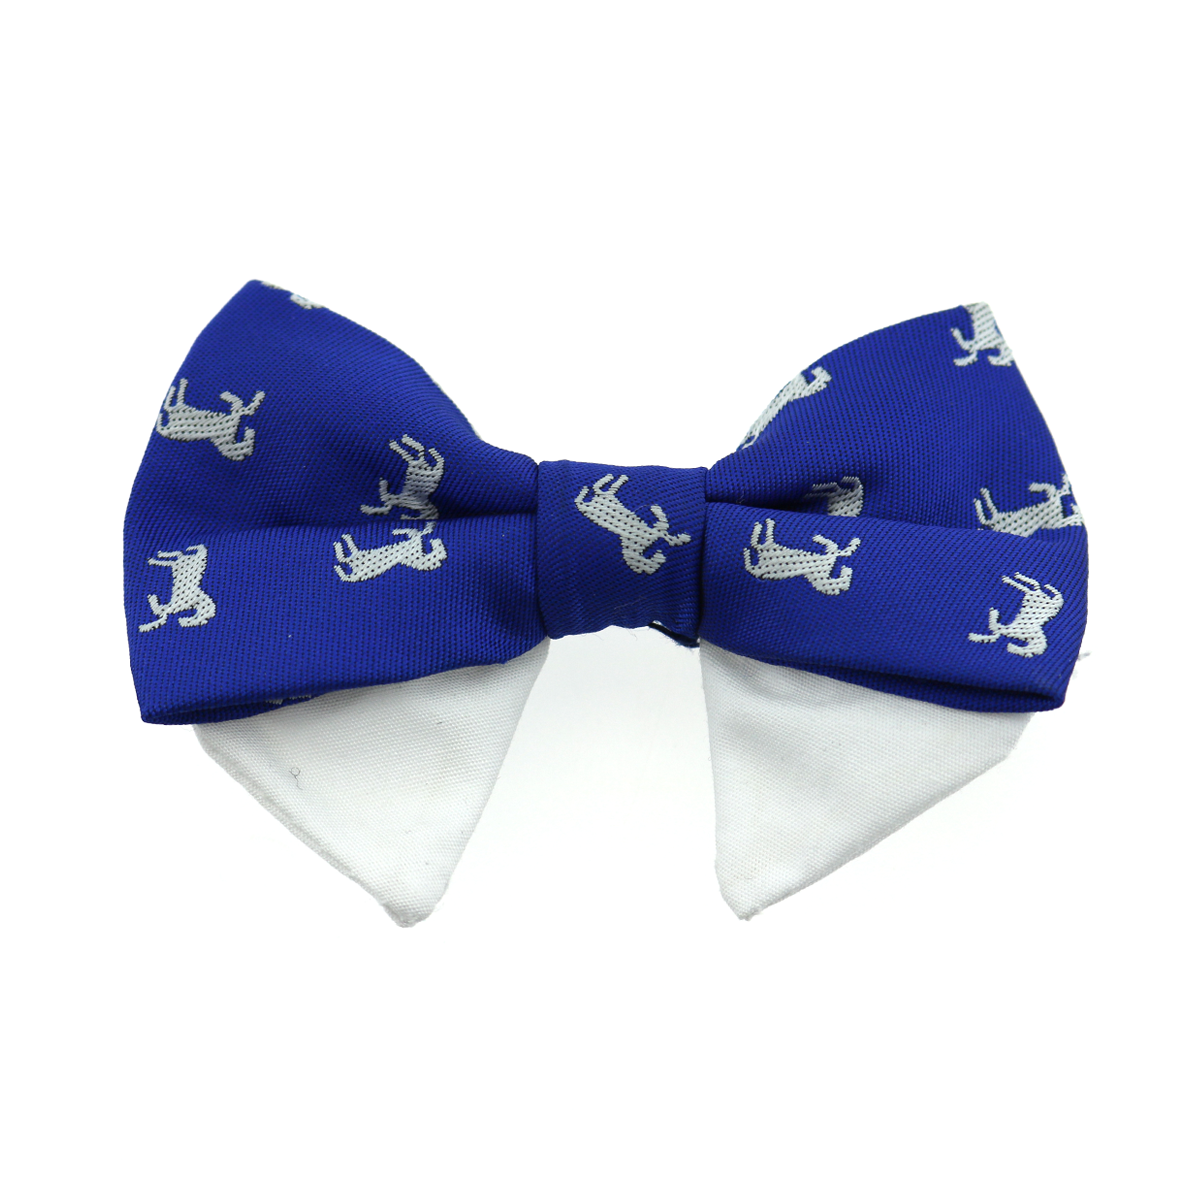 Universal Dog Bow Tie - Navy Blue